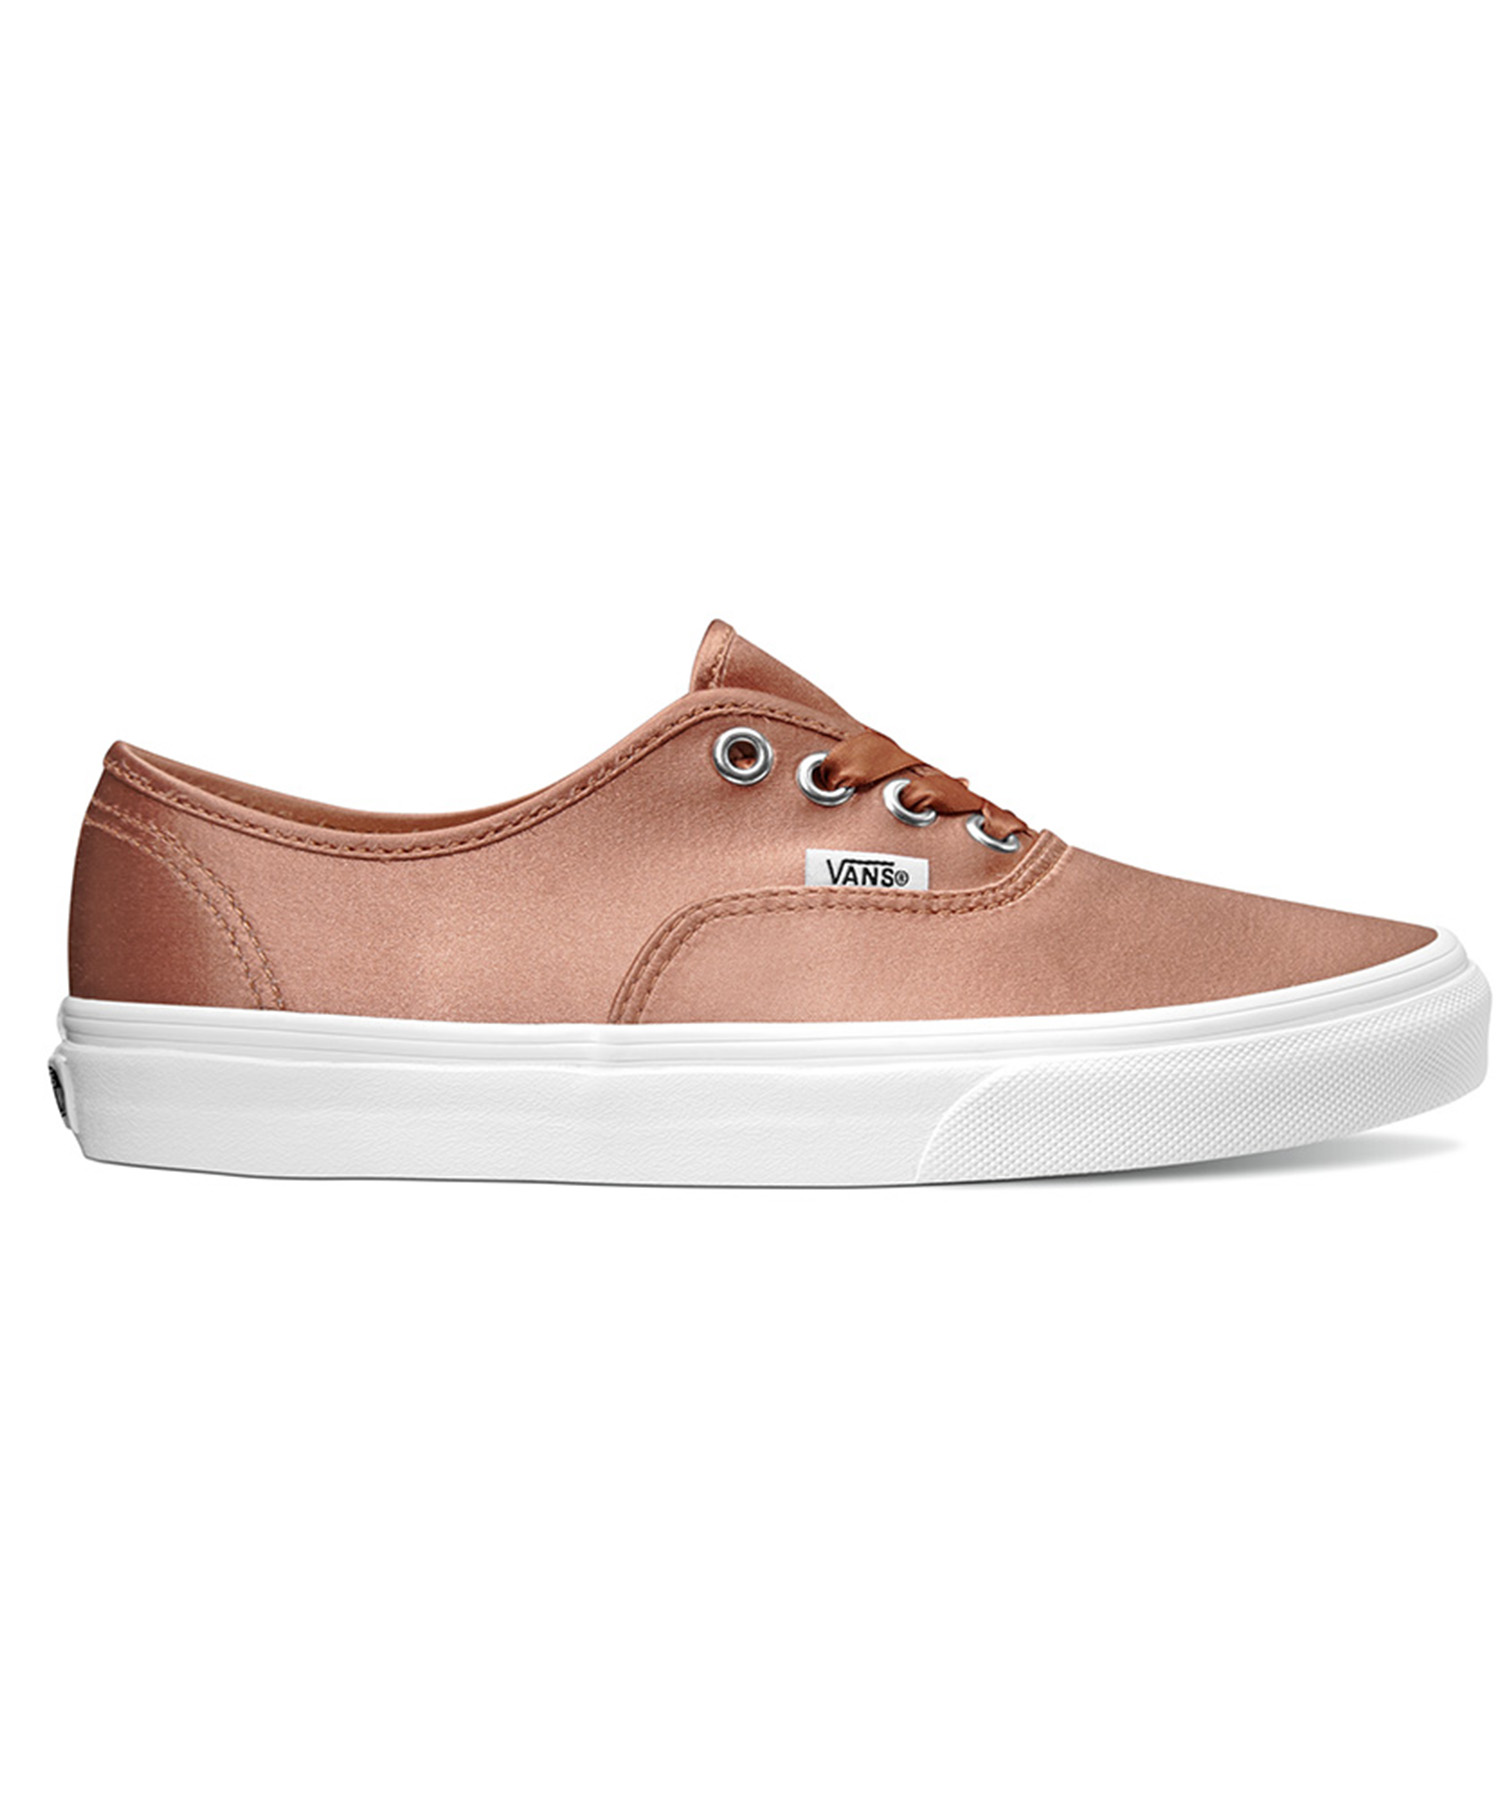 Vans Rose Gold Satin Lux Sneakers